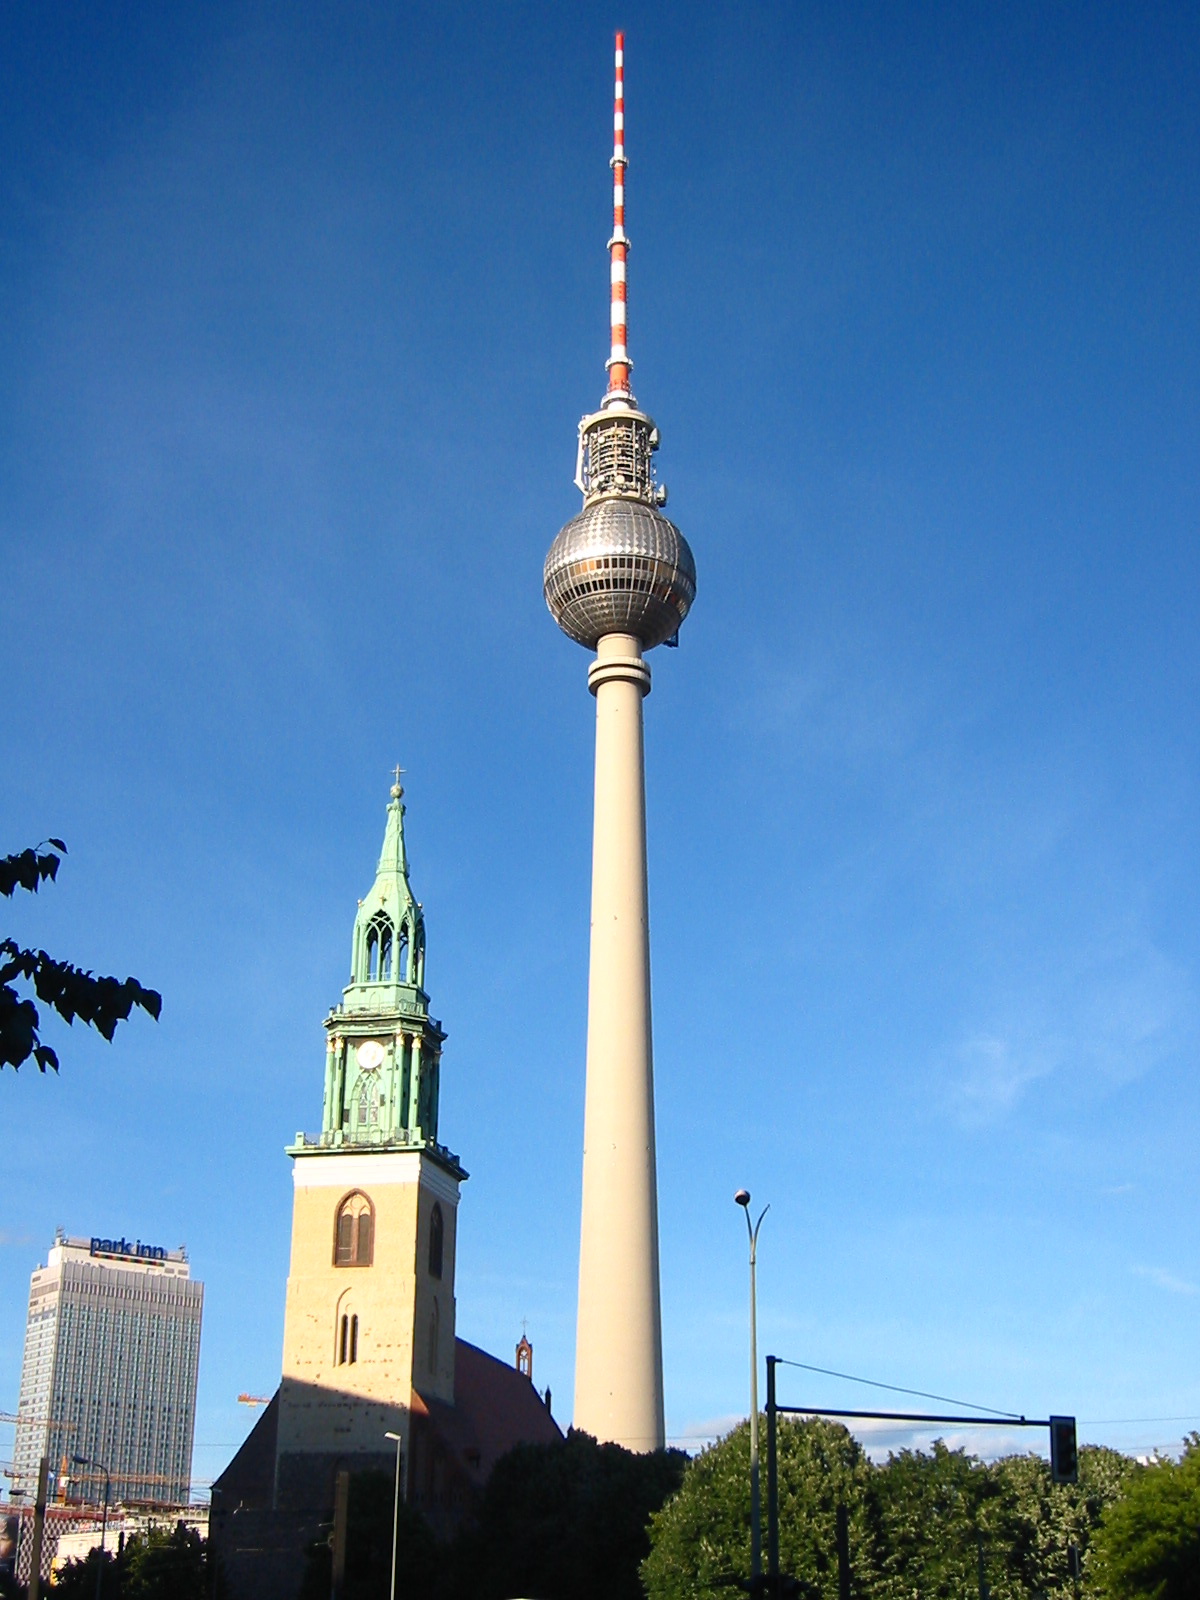 fernsehturm reisensienachberlin. Black Bedroom Furniture Sets. Home Design Ideas